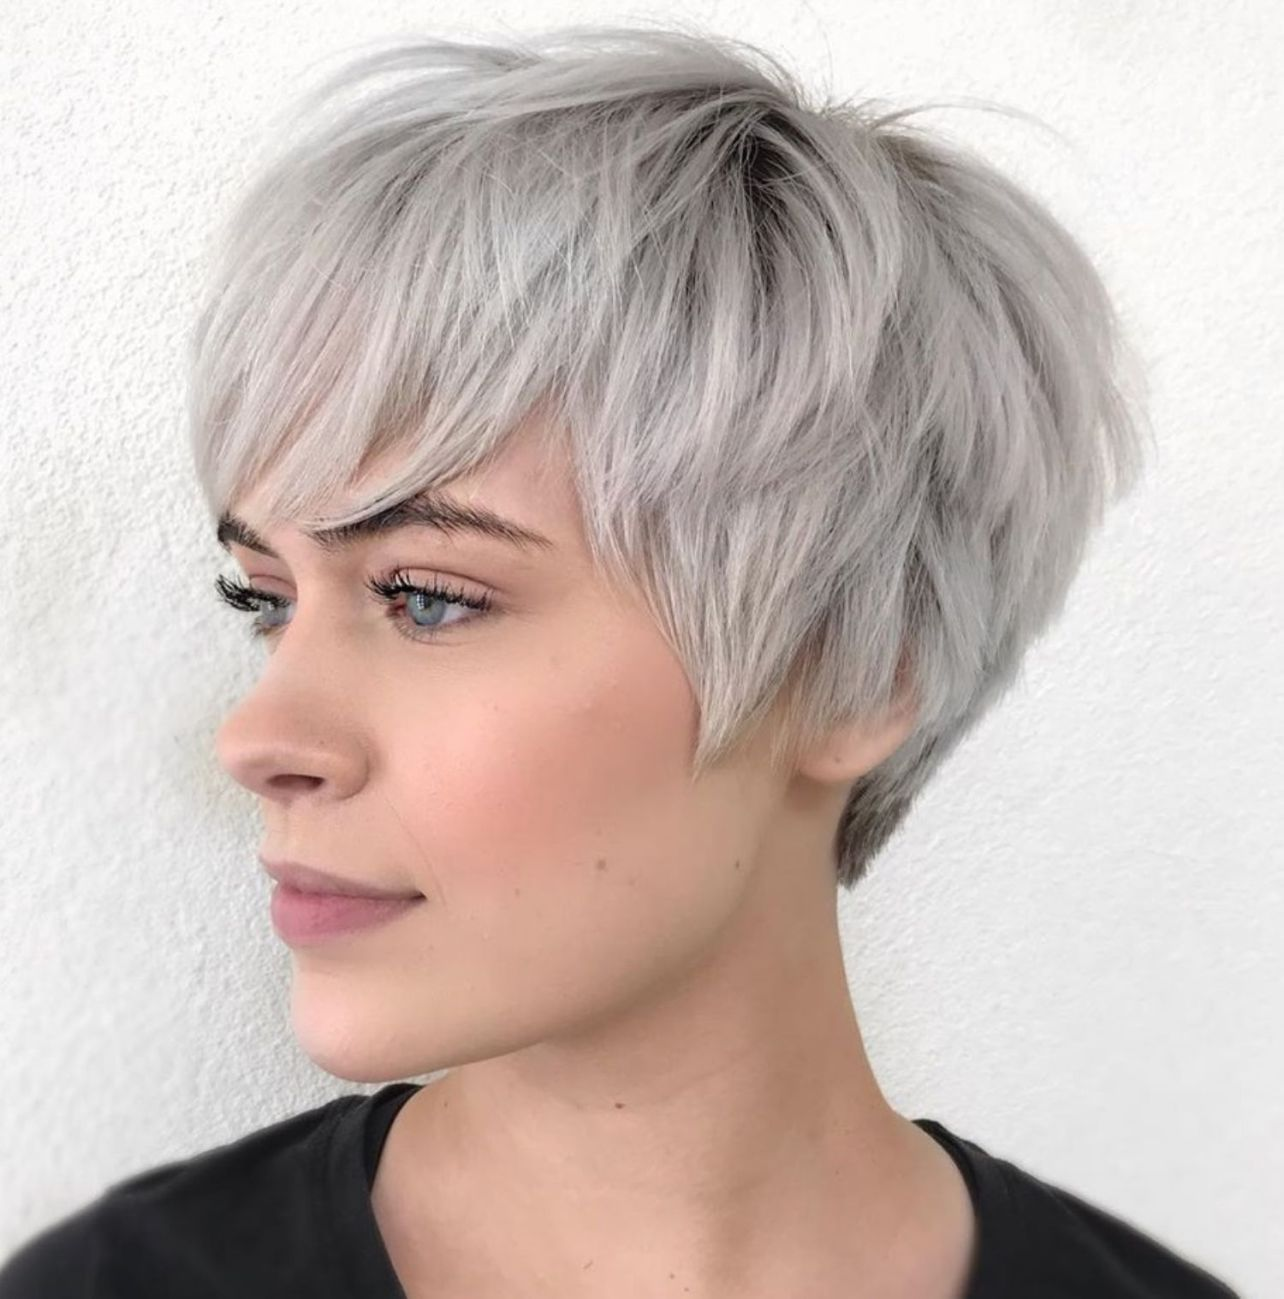 Pixie Haircuts For Thick Hair 50 Ideas Of Ideal Short Haircuts Pixie Haircut For Thick Hair Thick Hair Styles Short Hairstyles For Thick Hair